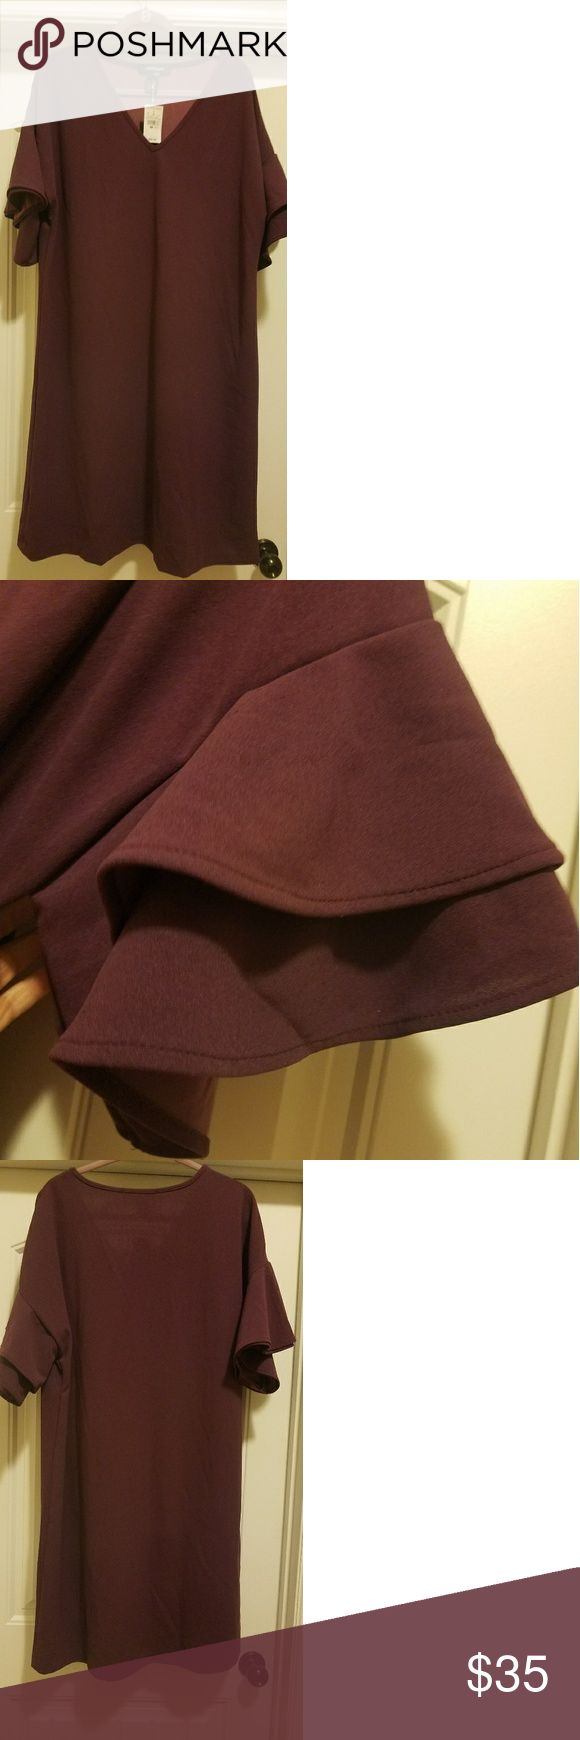 Plum colored dress This beautiful plum colored dressed can be worn anywhere. It is very nice in not showing your stomach. Ashley Stewart Dresses Midi